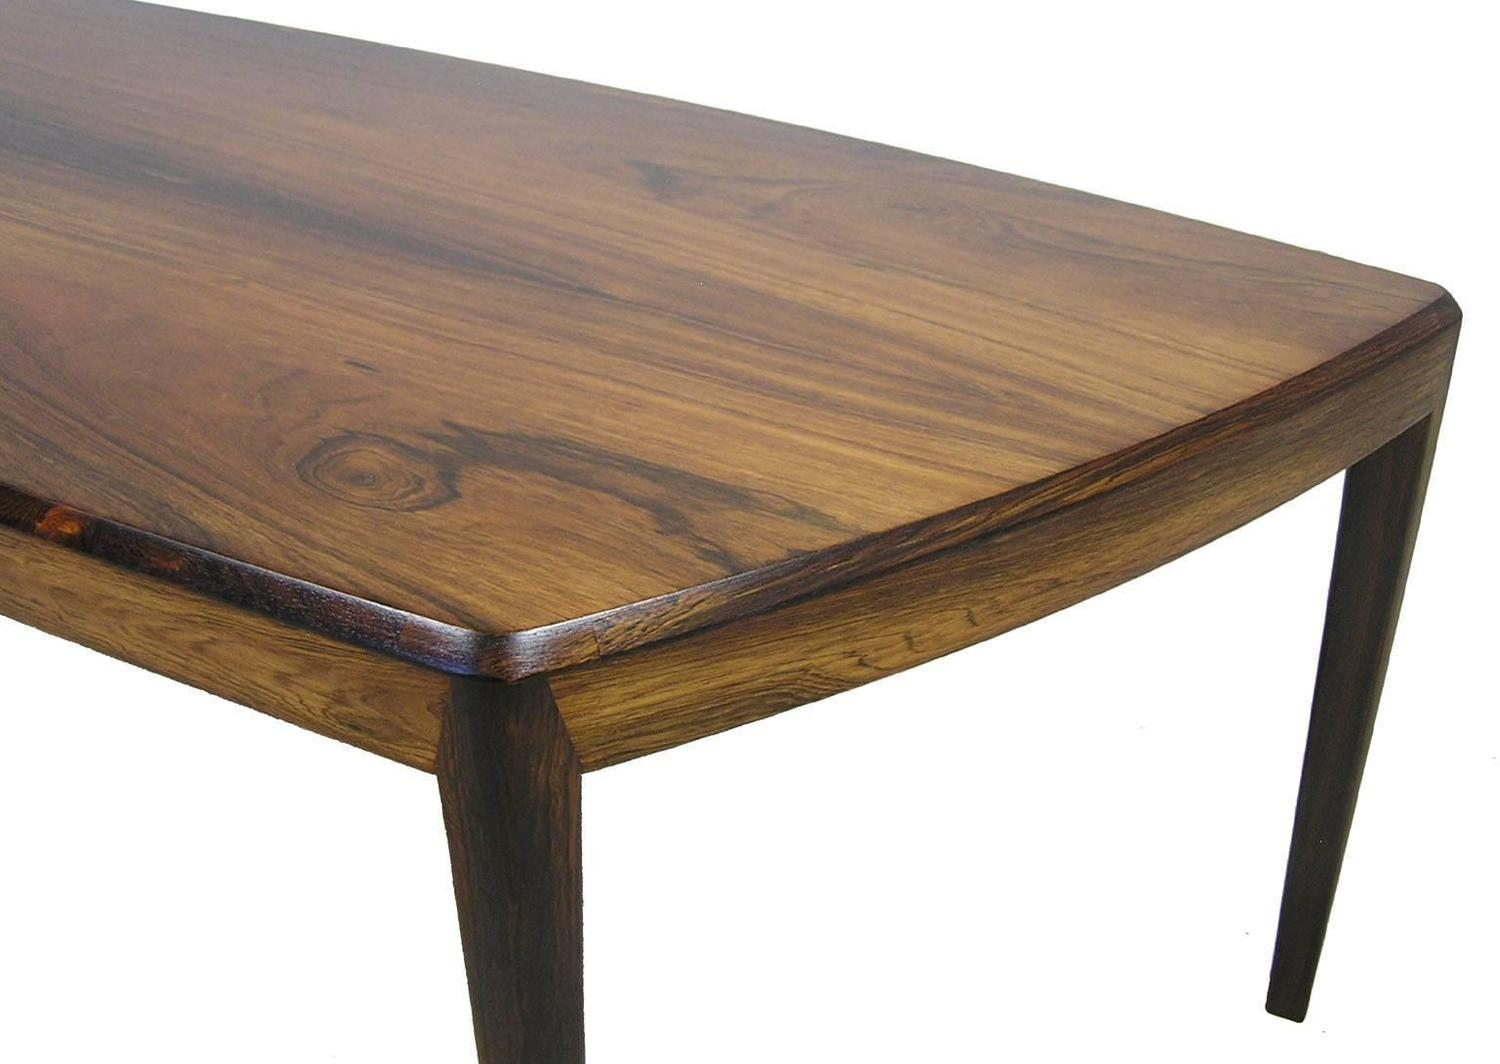 1960s Brazilian Rosewood Coffee Table by Kai Kristiansen